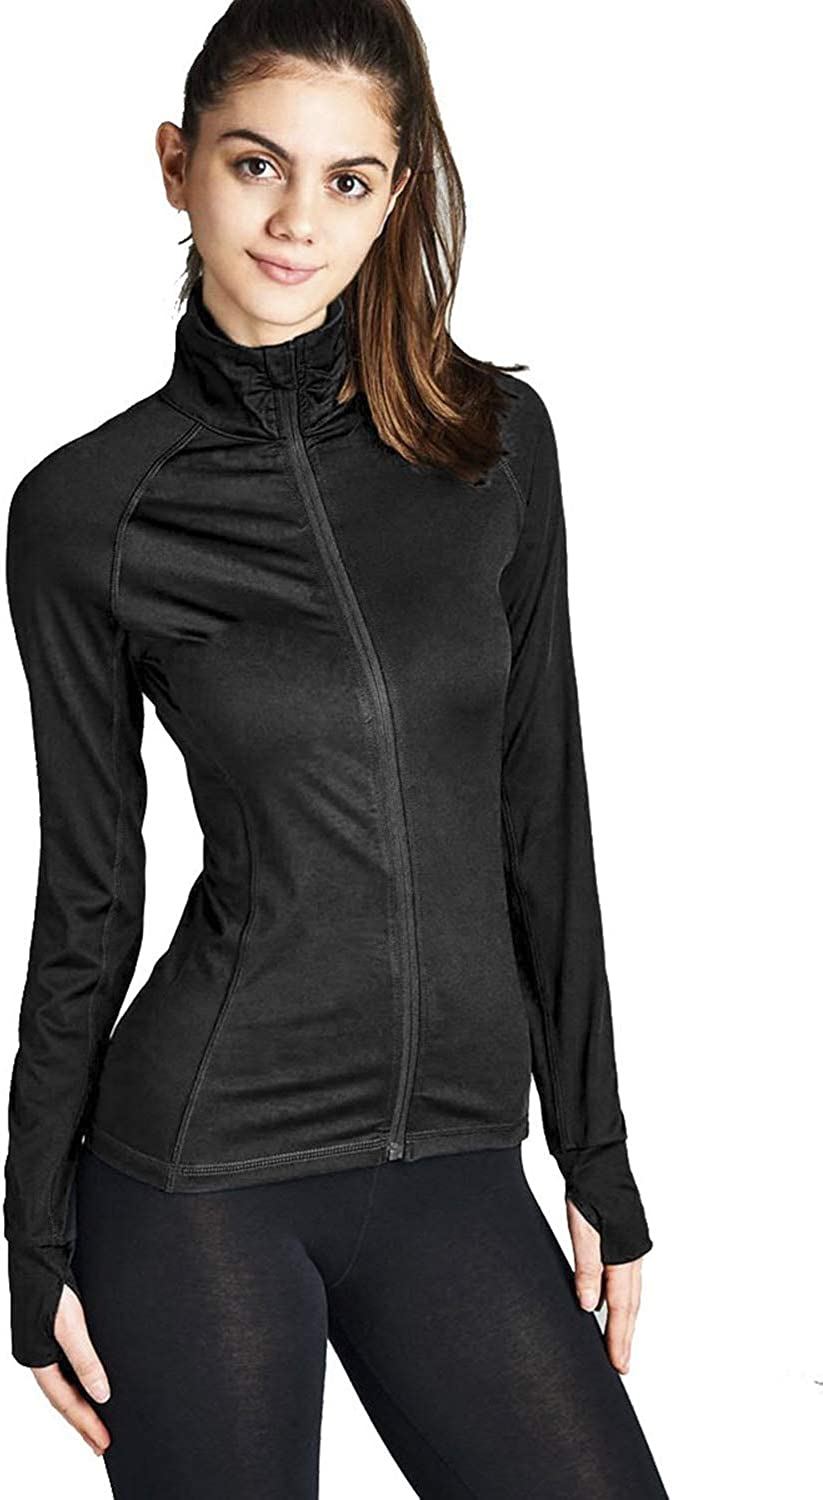 Hollywood Star Fashion Womens Long Sleeve Zip up Athletic wear Sweater Work Out Gym Jacket